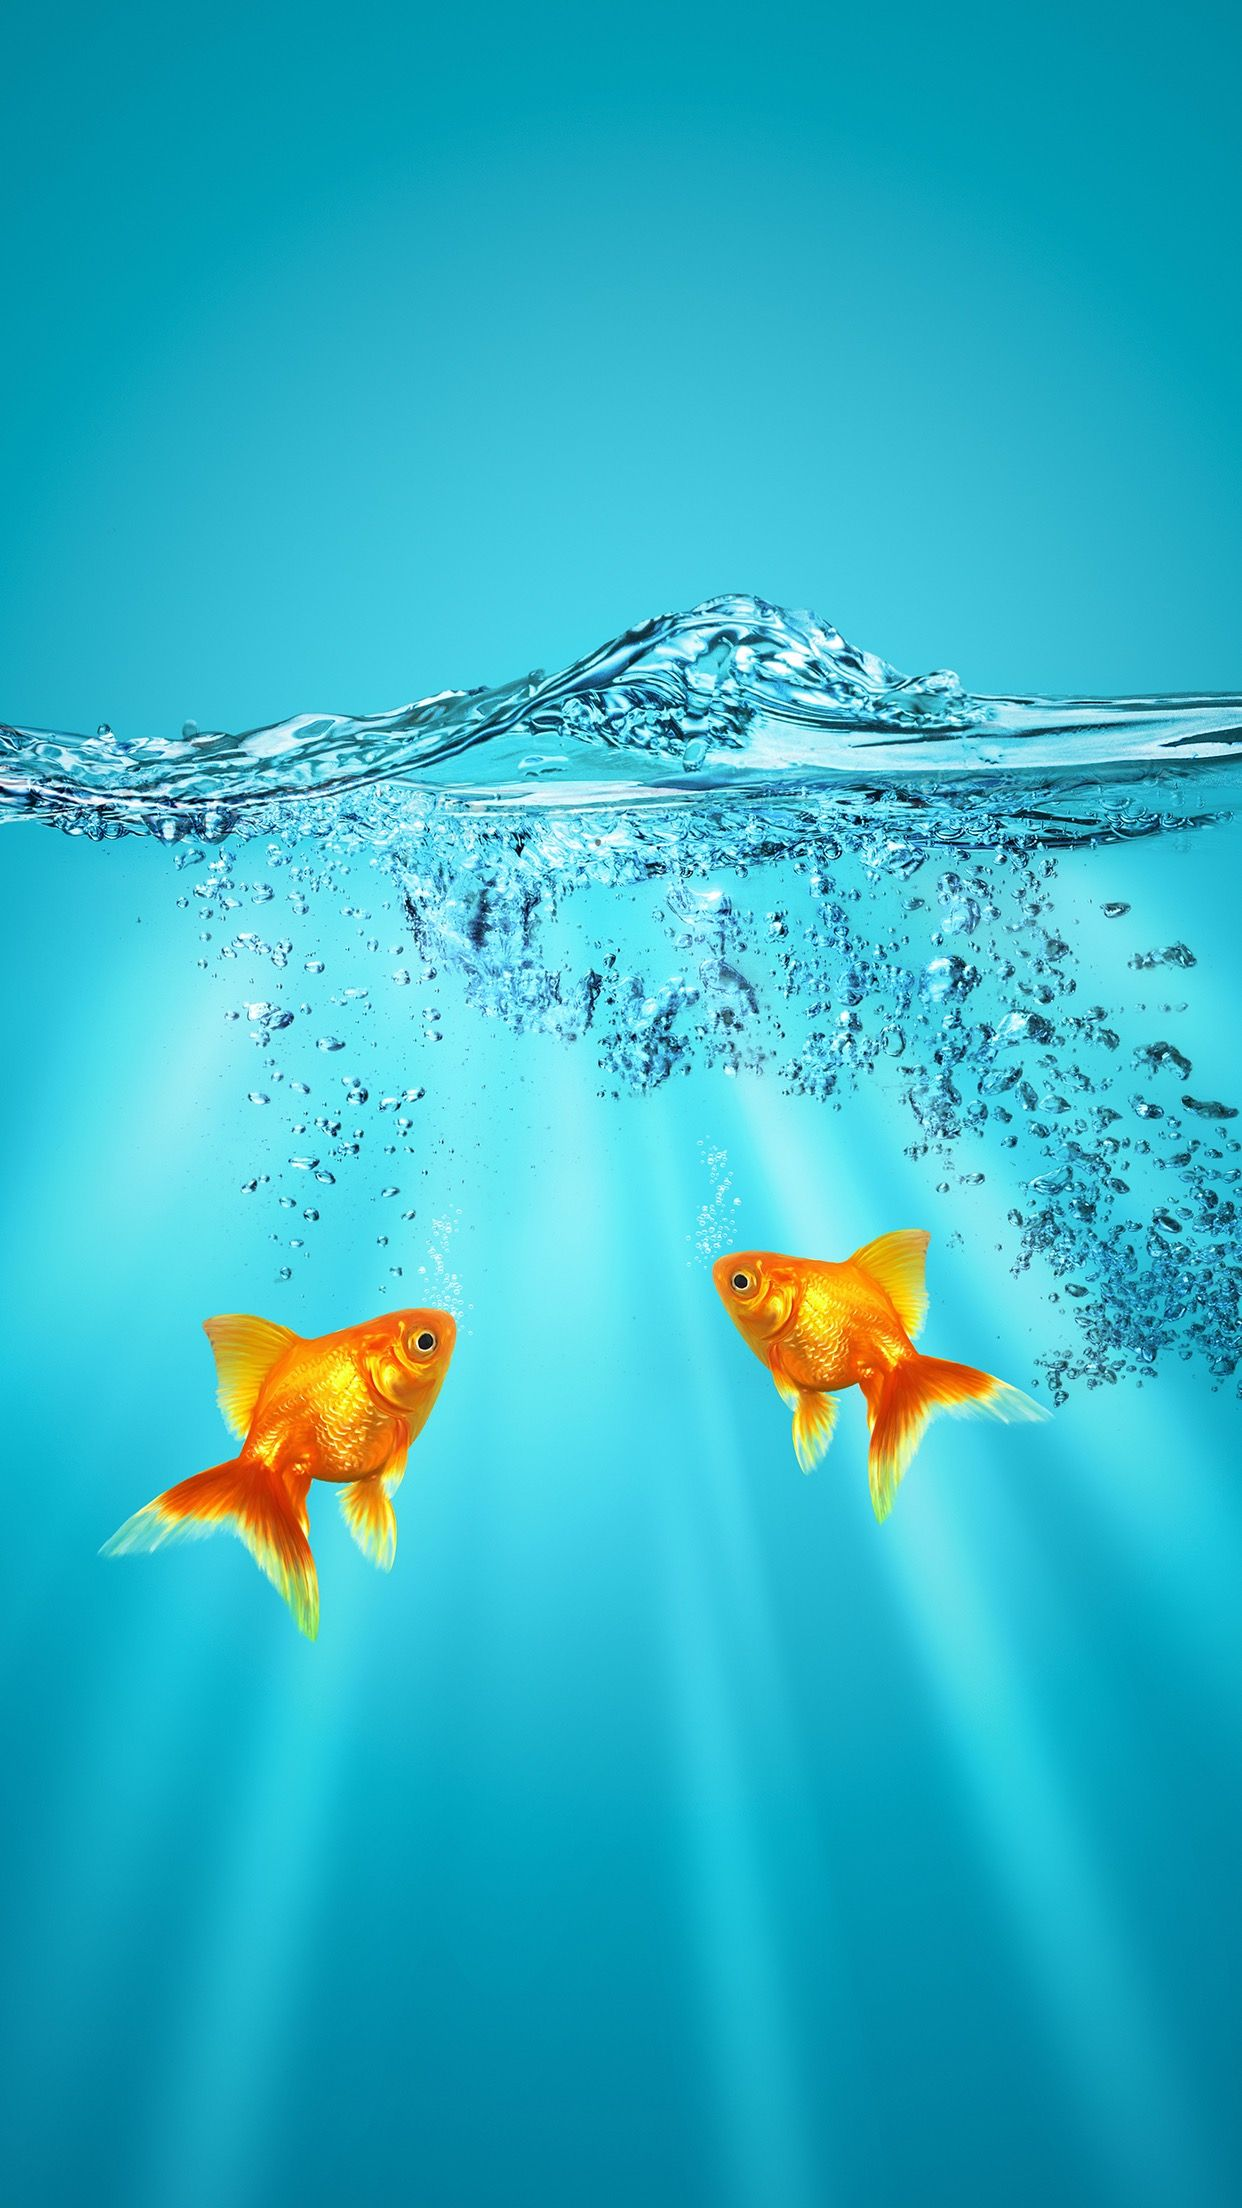 Pin By Tammy Rollins On Wallpaper Goldfish Wallpaper Backgrounds Phone Wallpapers Cool Pictures For Wallpaper